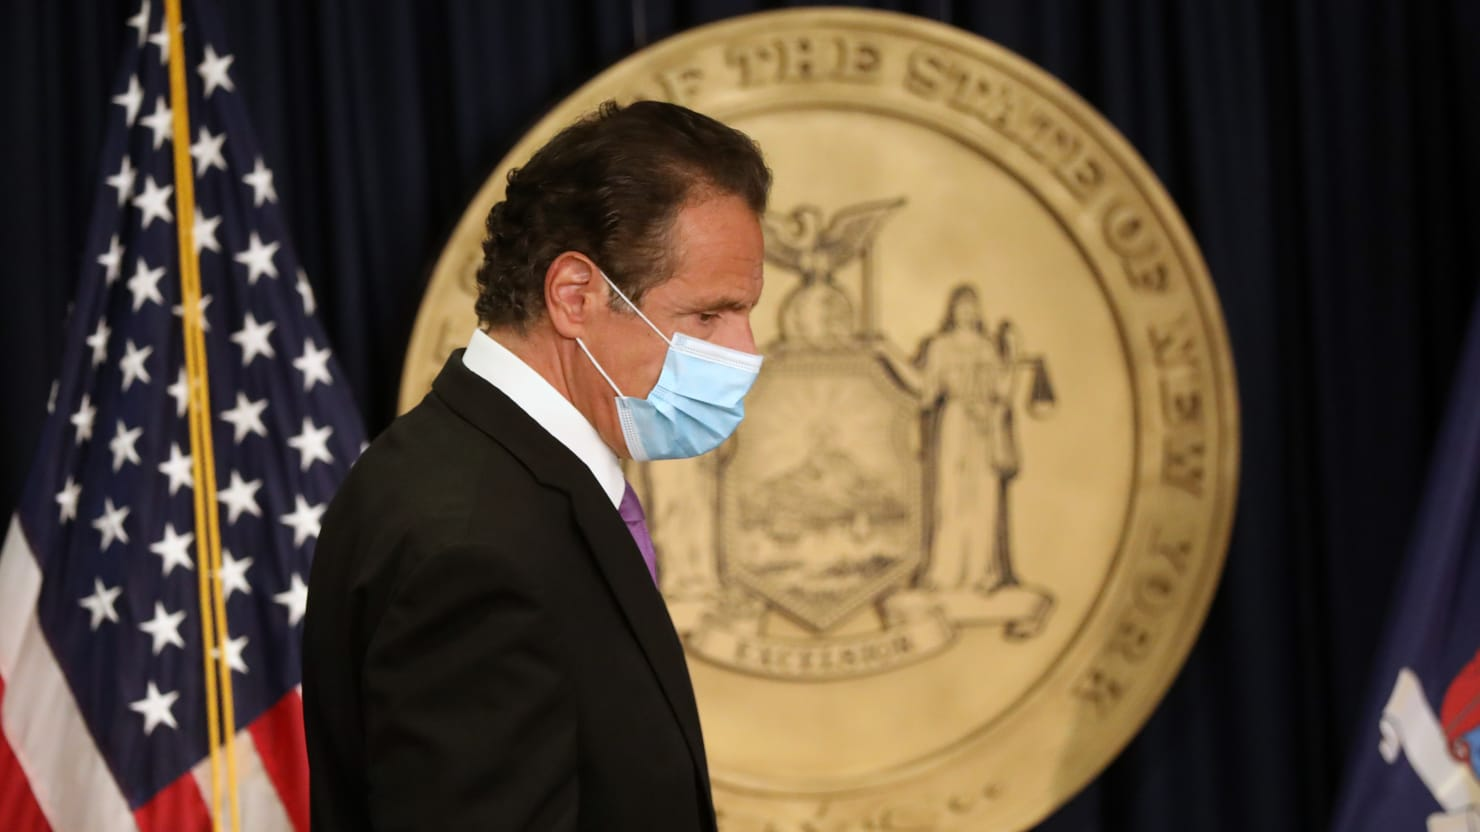 Cuomo: New York Could Shut Down in Days if COVID Hospitalizations Keep Surging